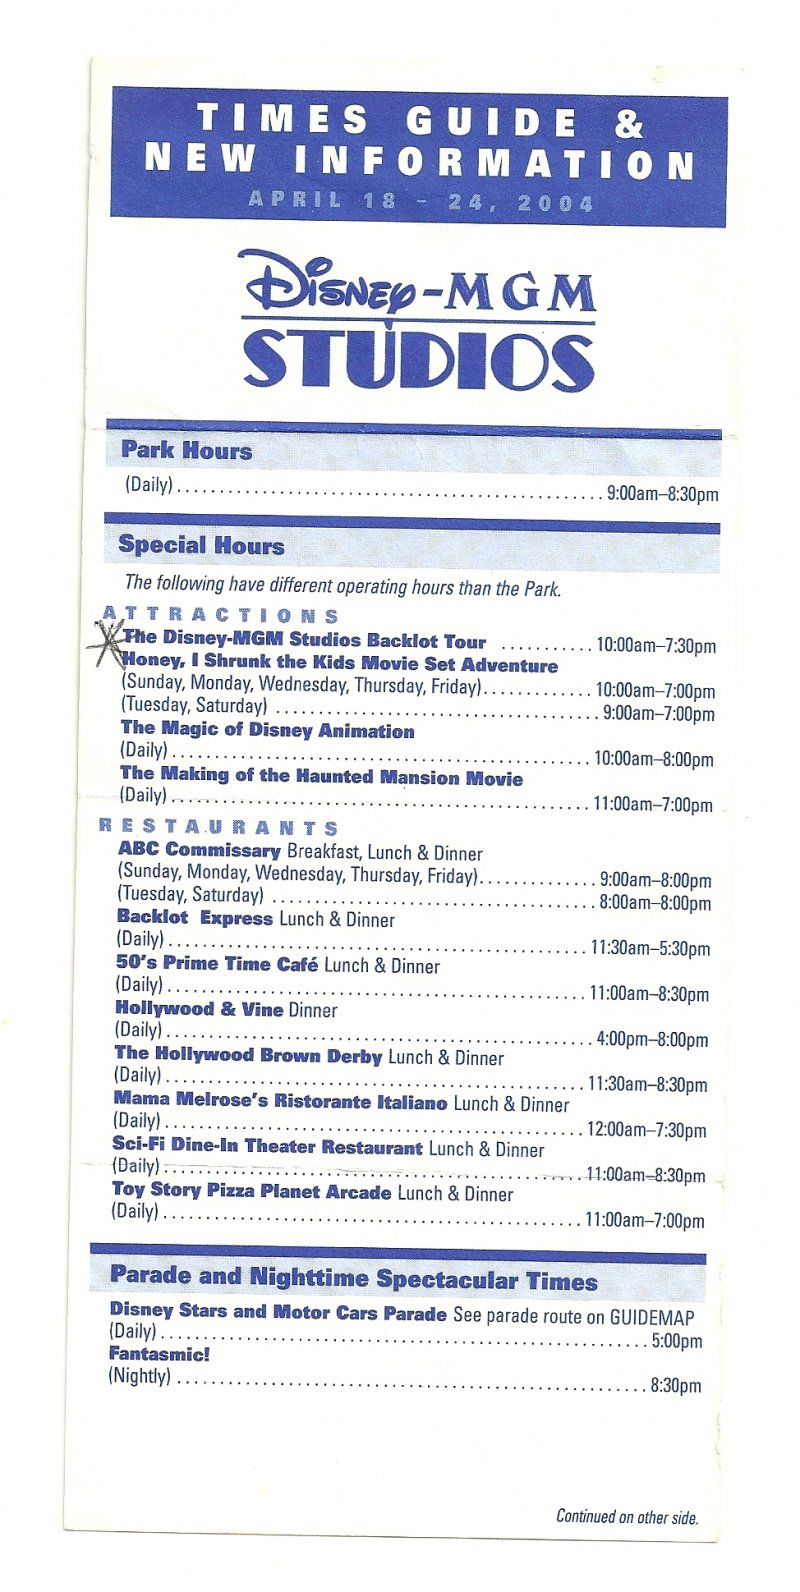 Image 0 of 2004 walt disney world Disney MGM Studios Times guide Flyer April 18-24